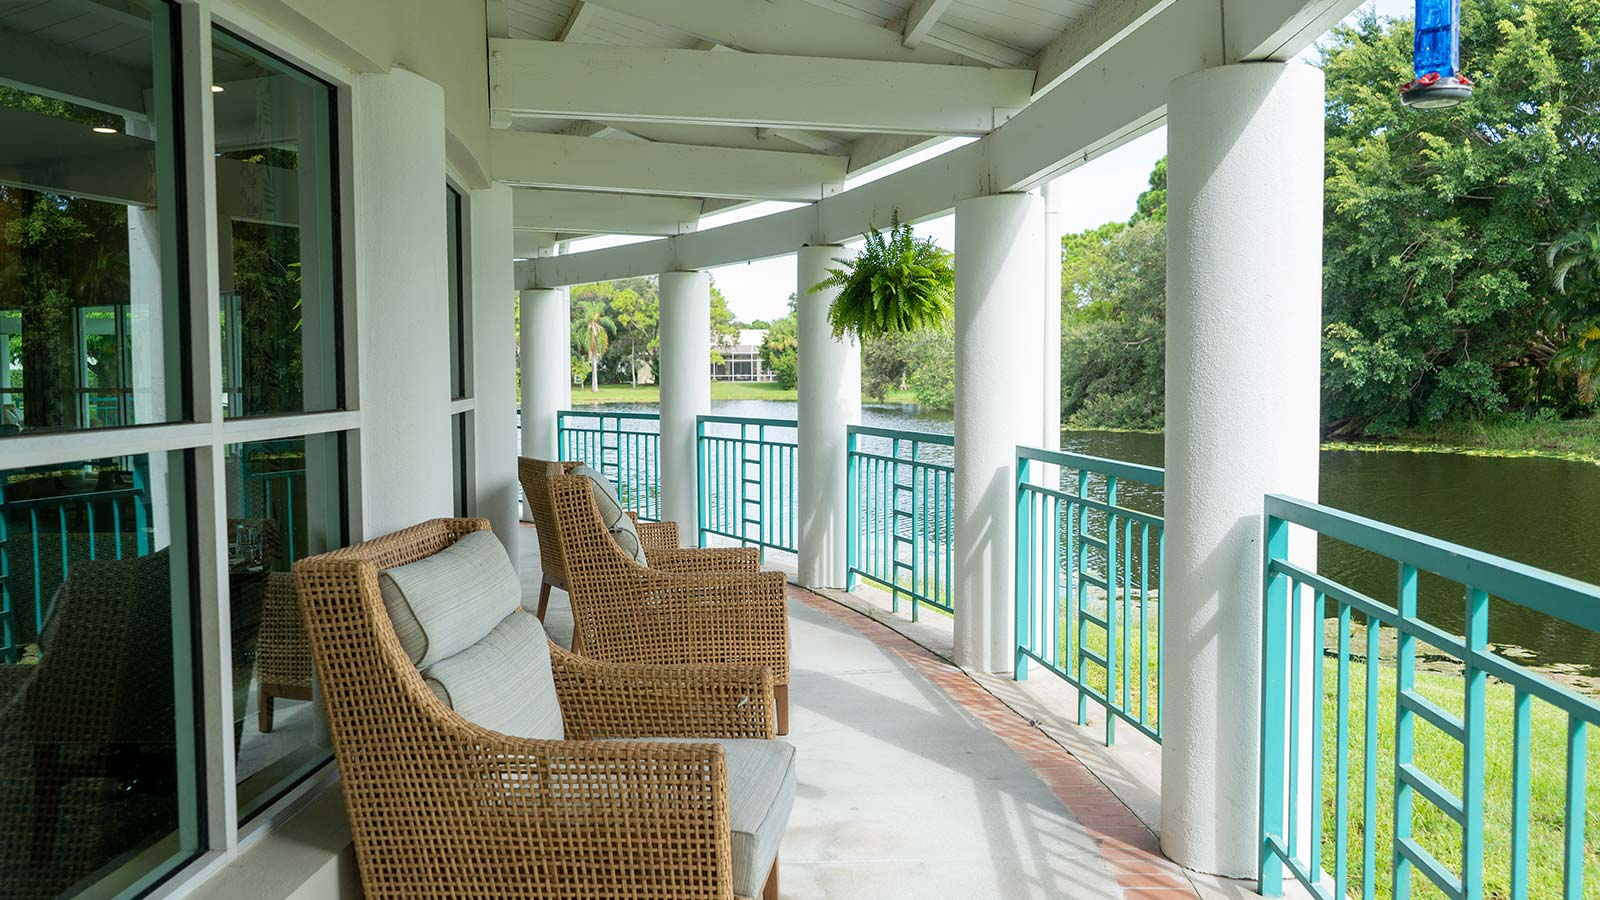 Outdoor lakefront porch at Heron Club assisted living and memory care in Sarasota Florida